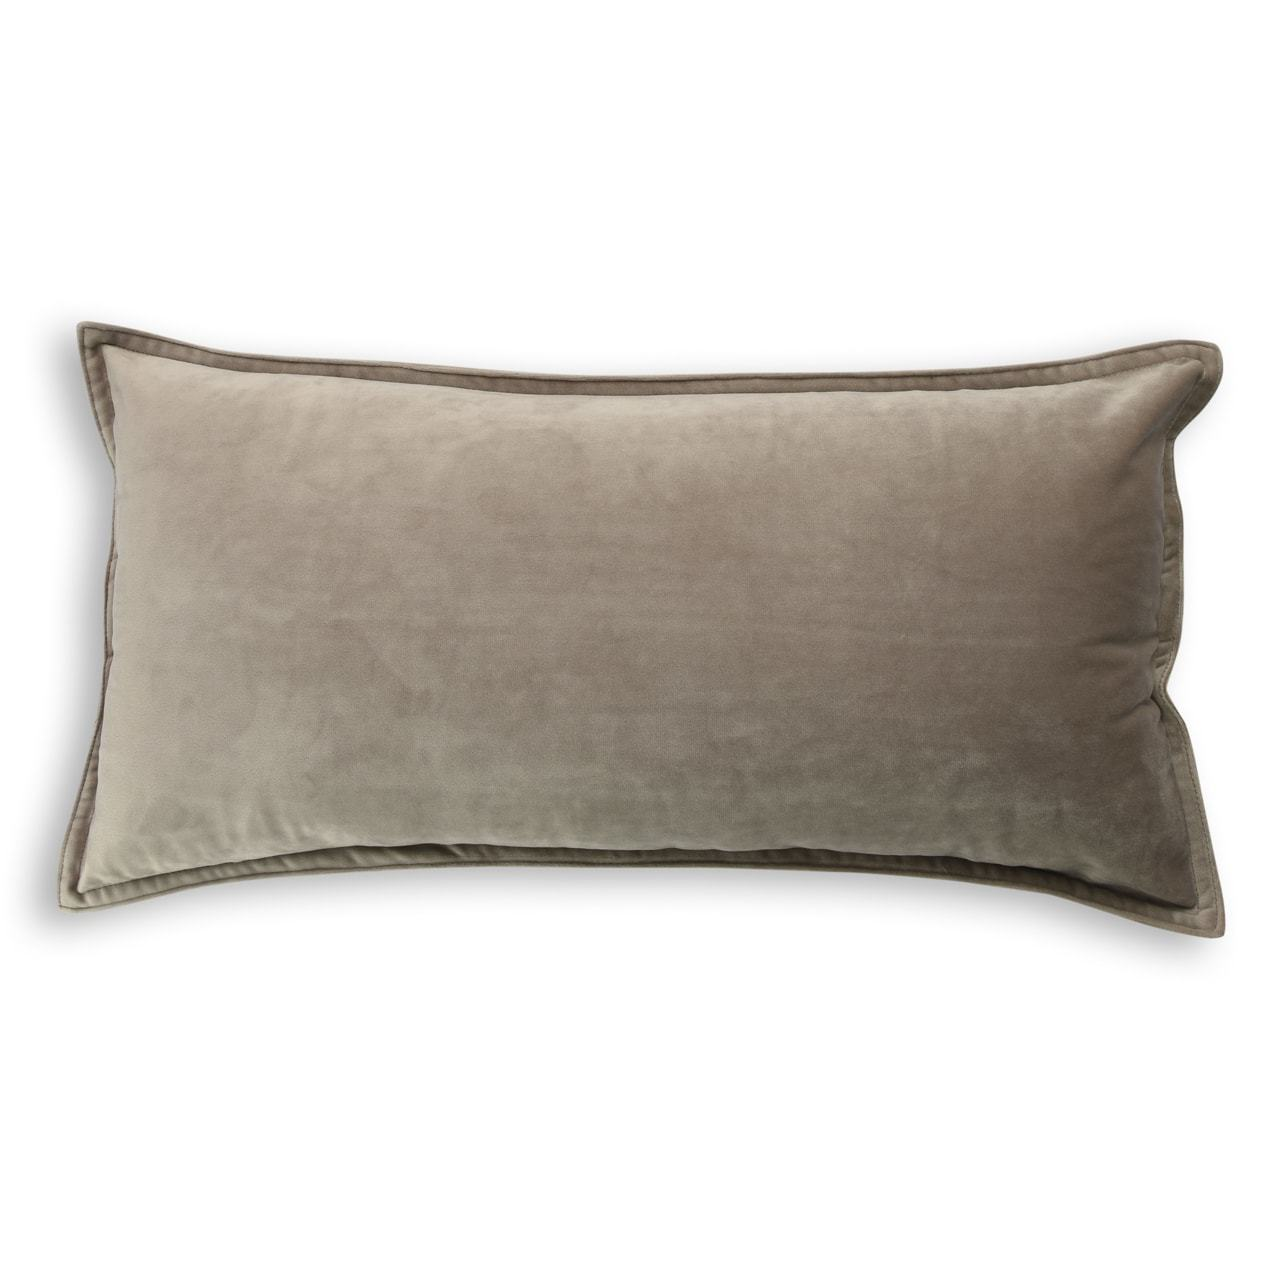 Velvet Oblong Cushion Covers 30 x 60 cm